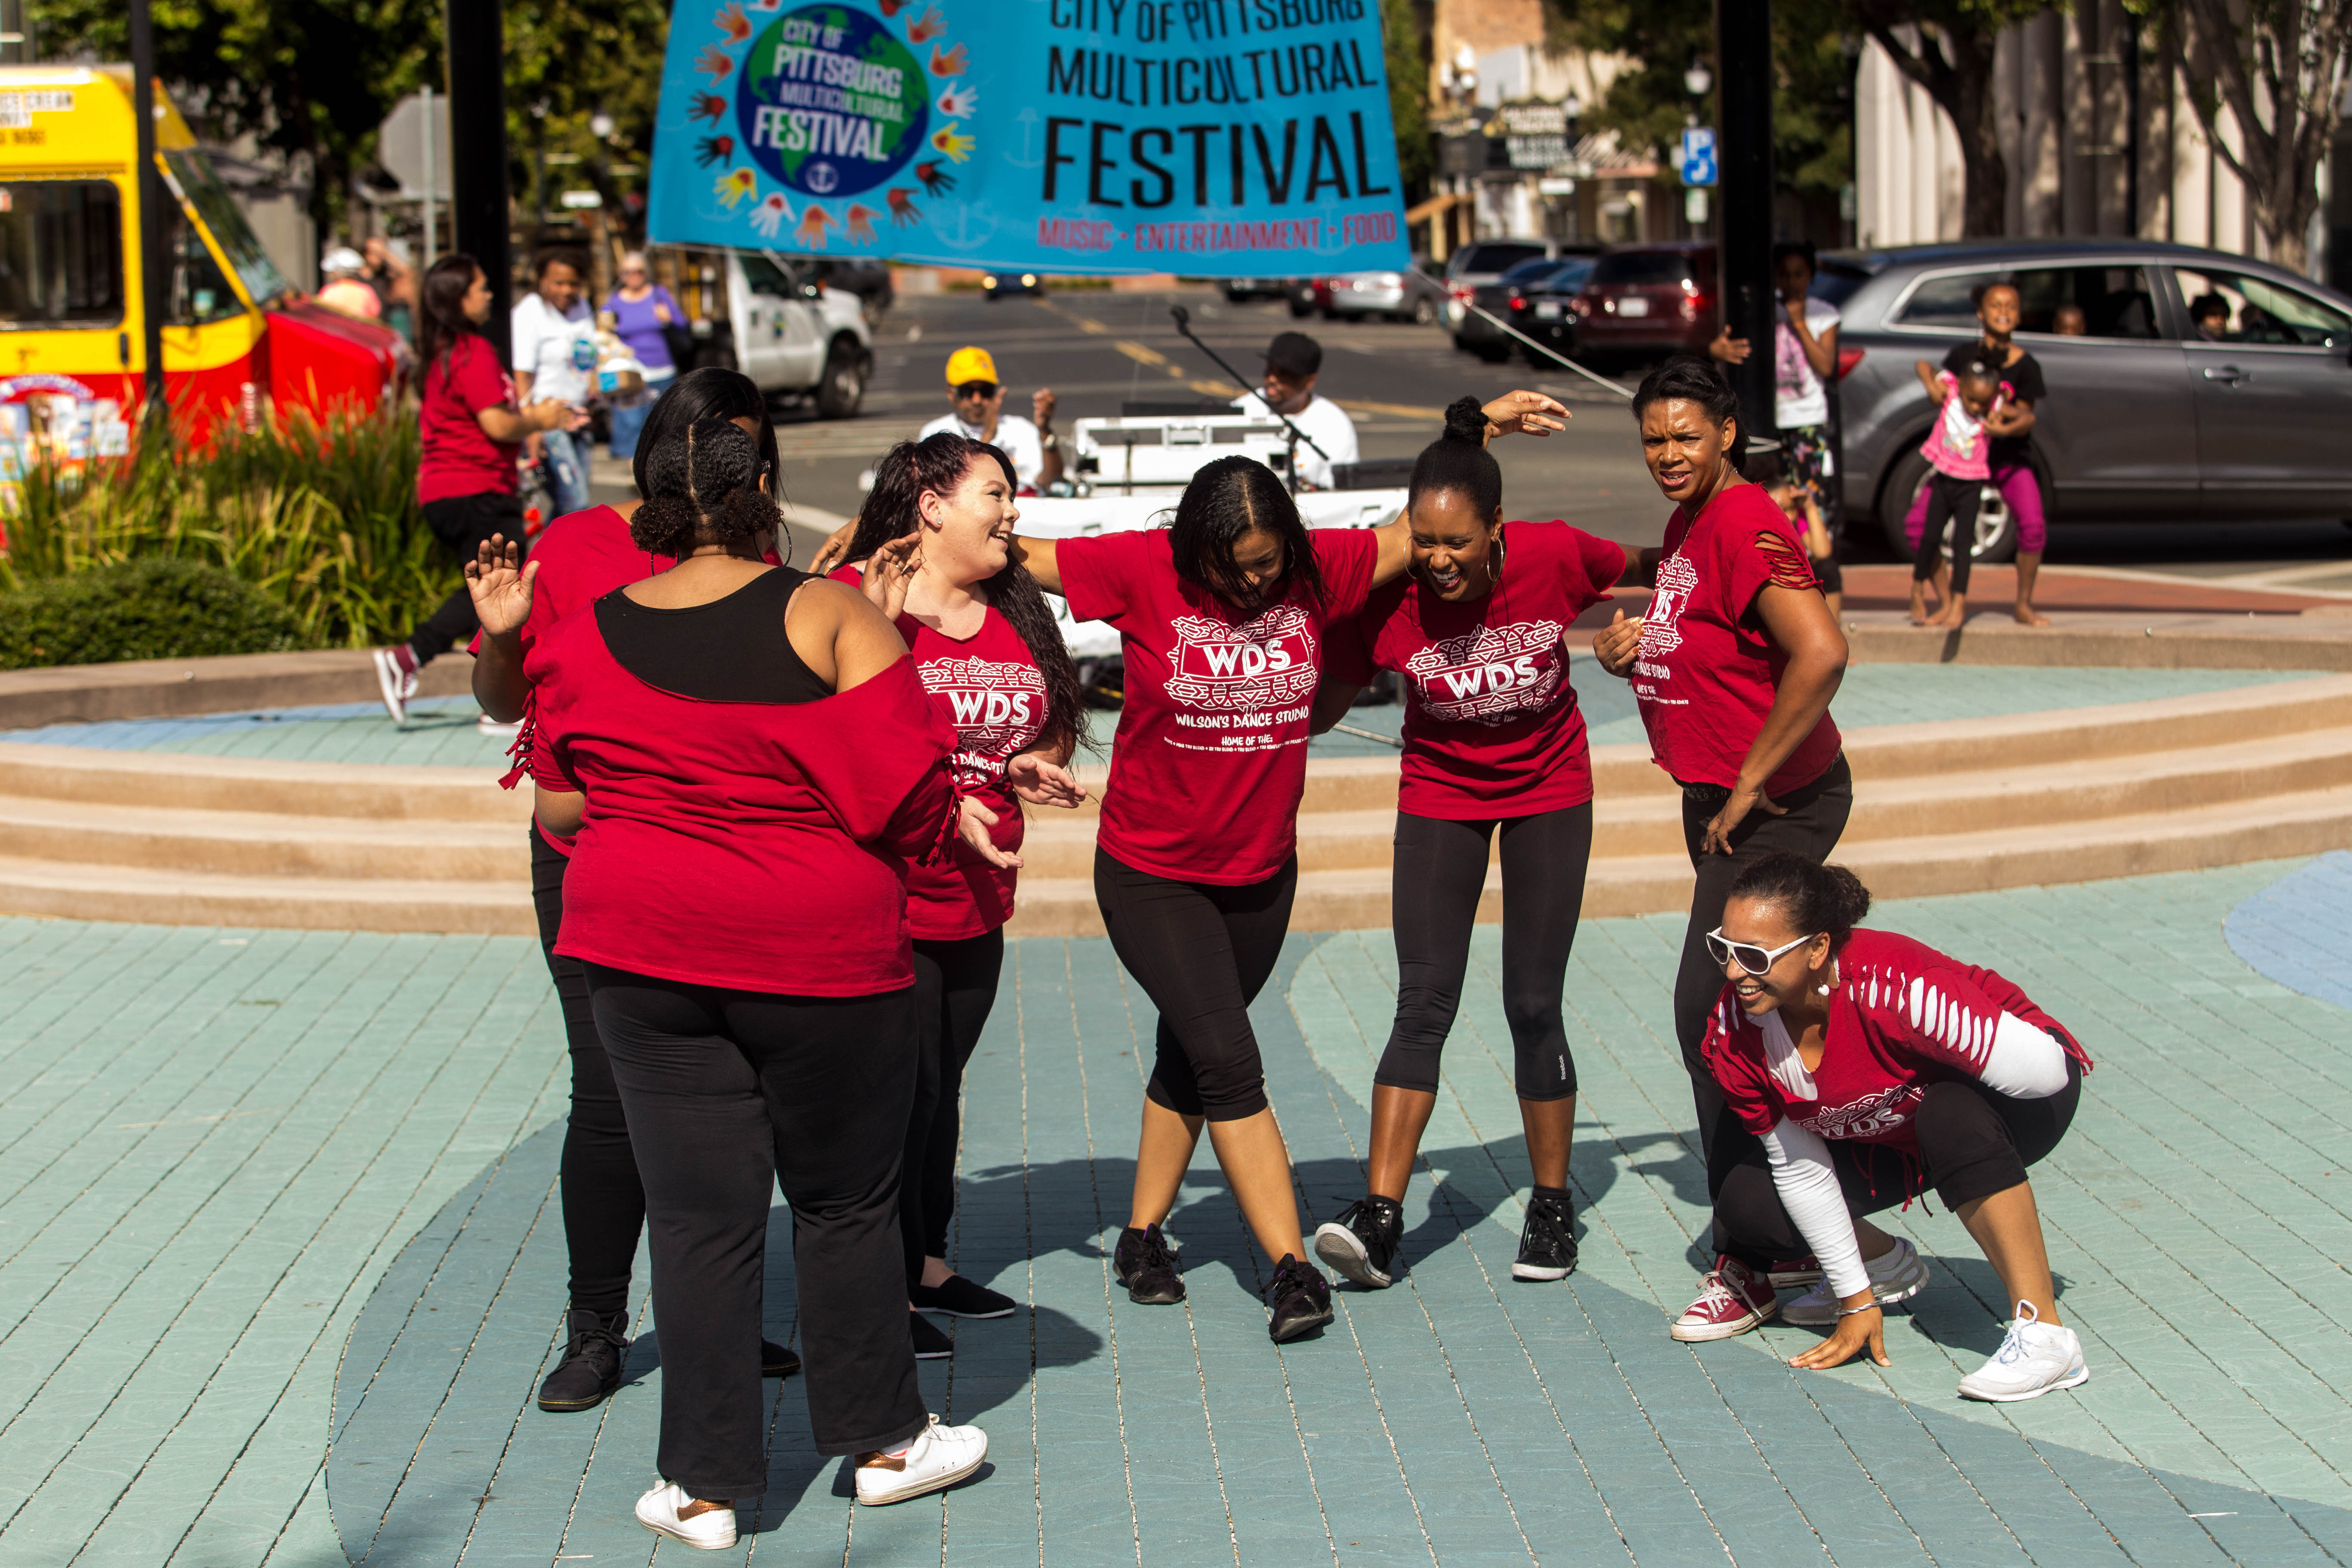 CITY_PITTSBURG_MULTICULTURAL_OCTOBER_2016 (411)